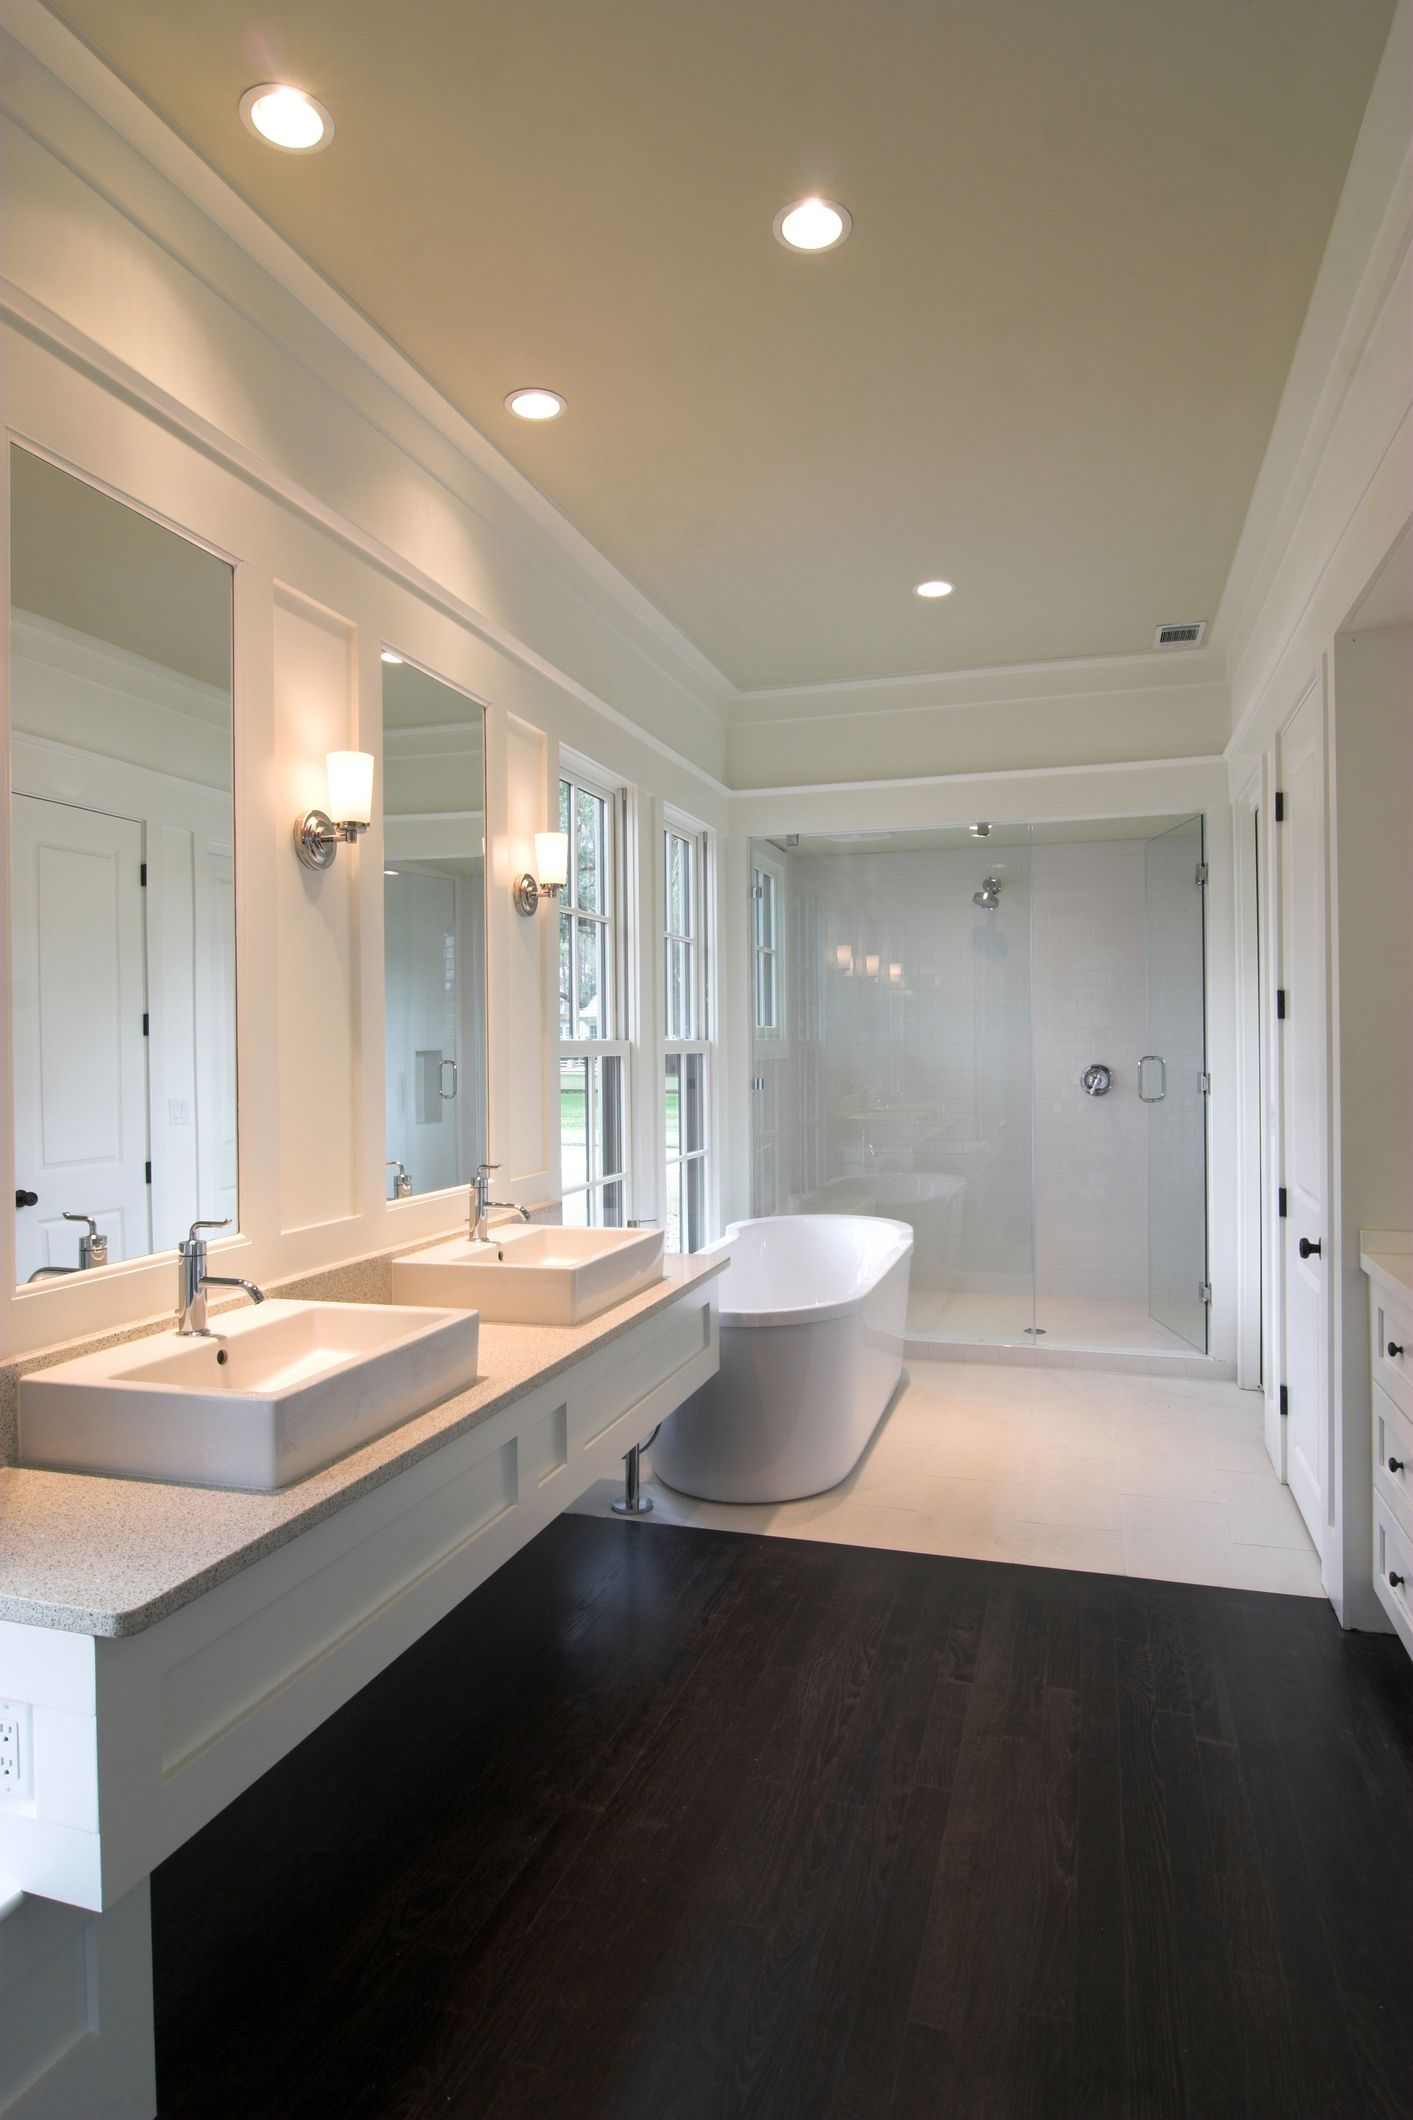 Master bedroom ensuite design  interesting merge of wooden floors and white tiles Find yours at